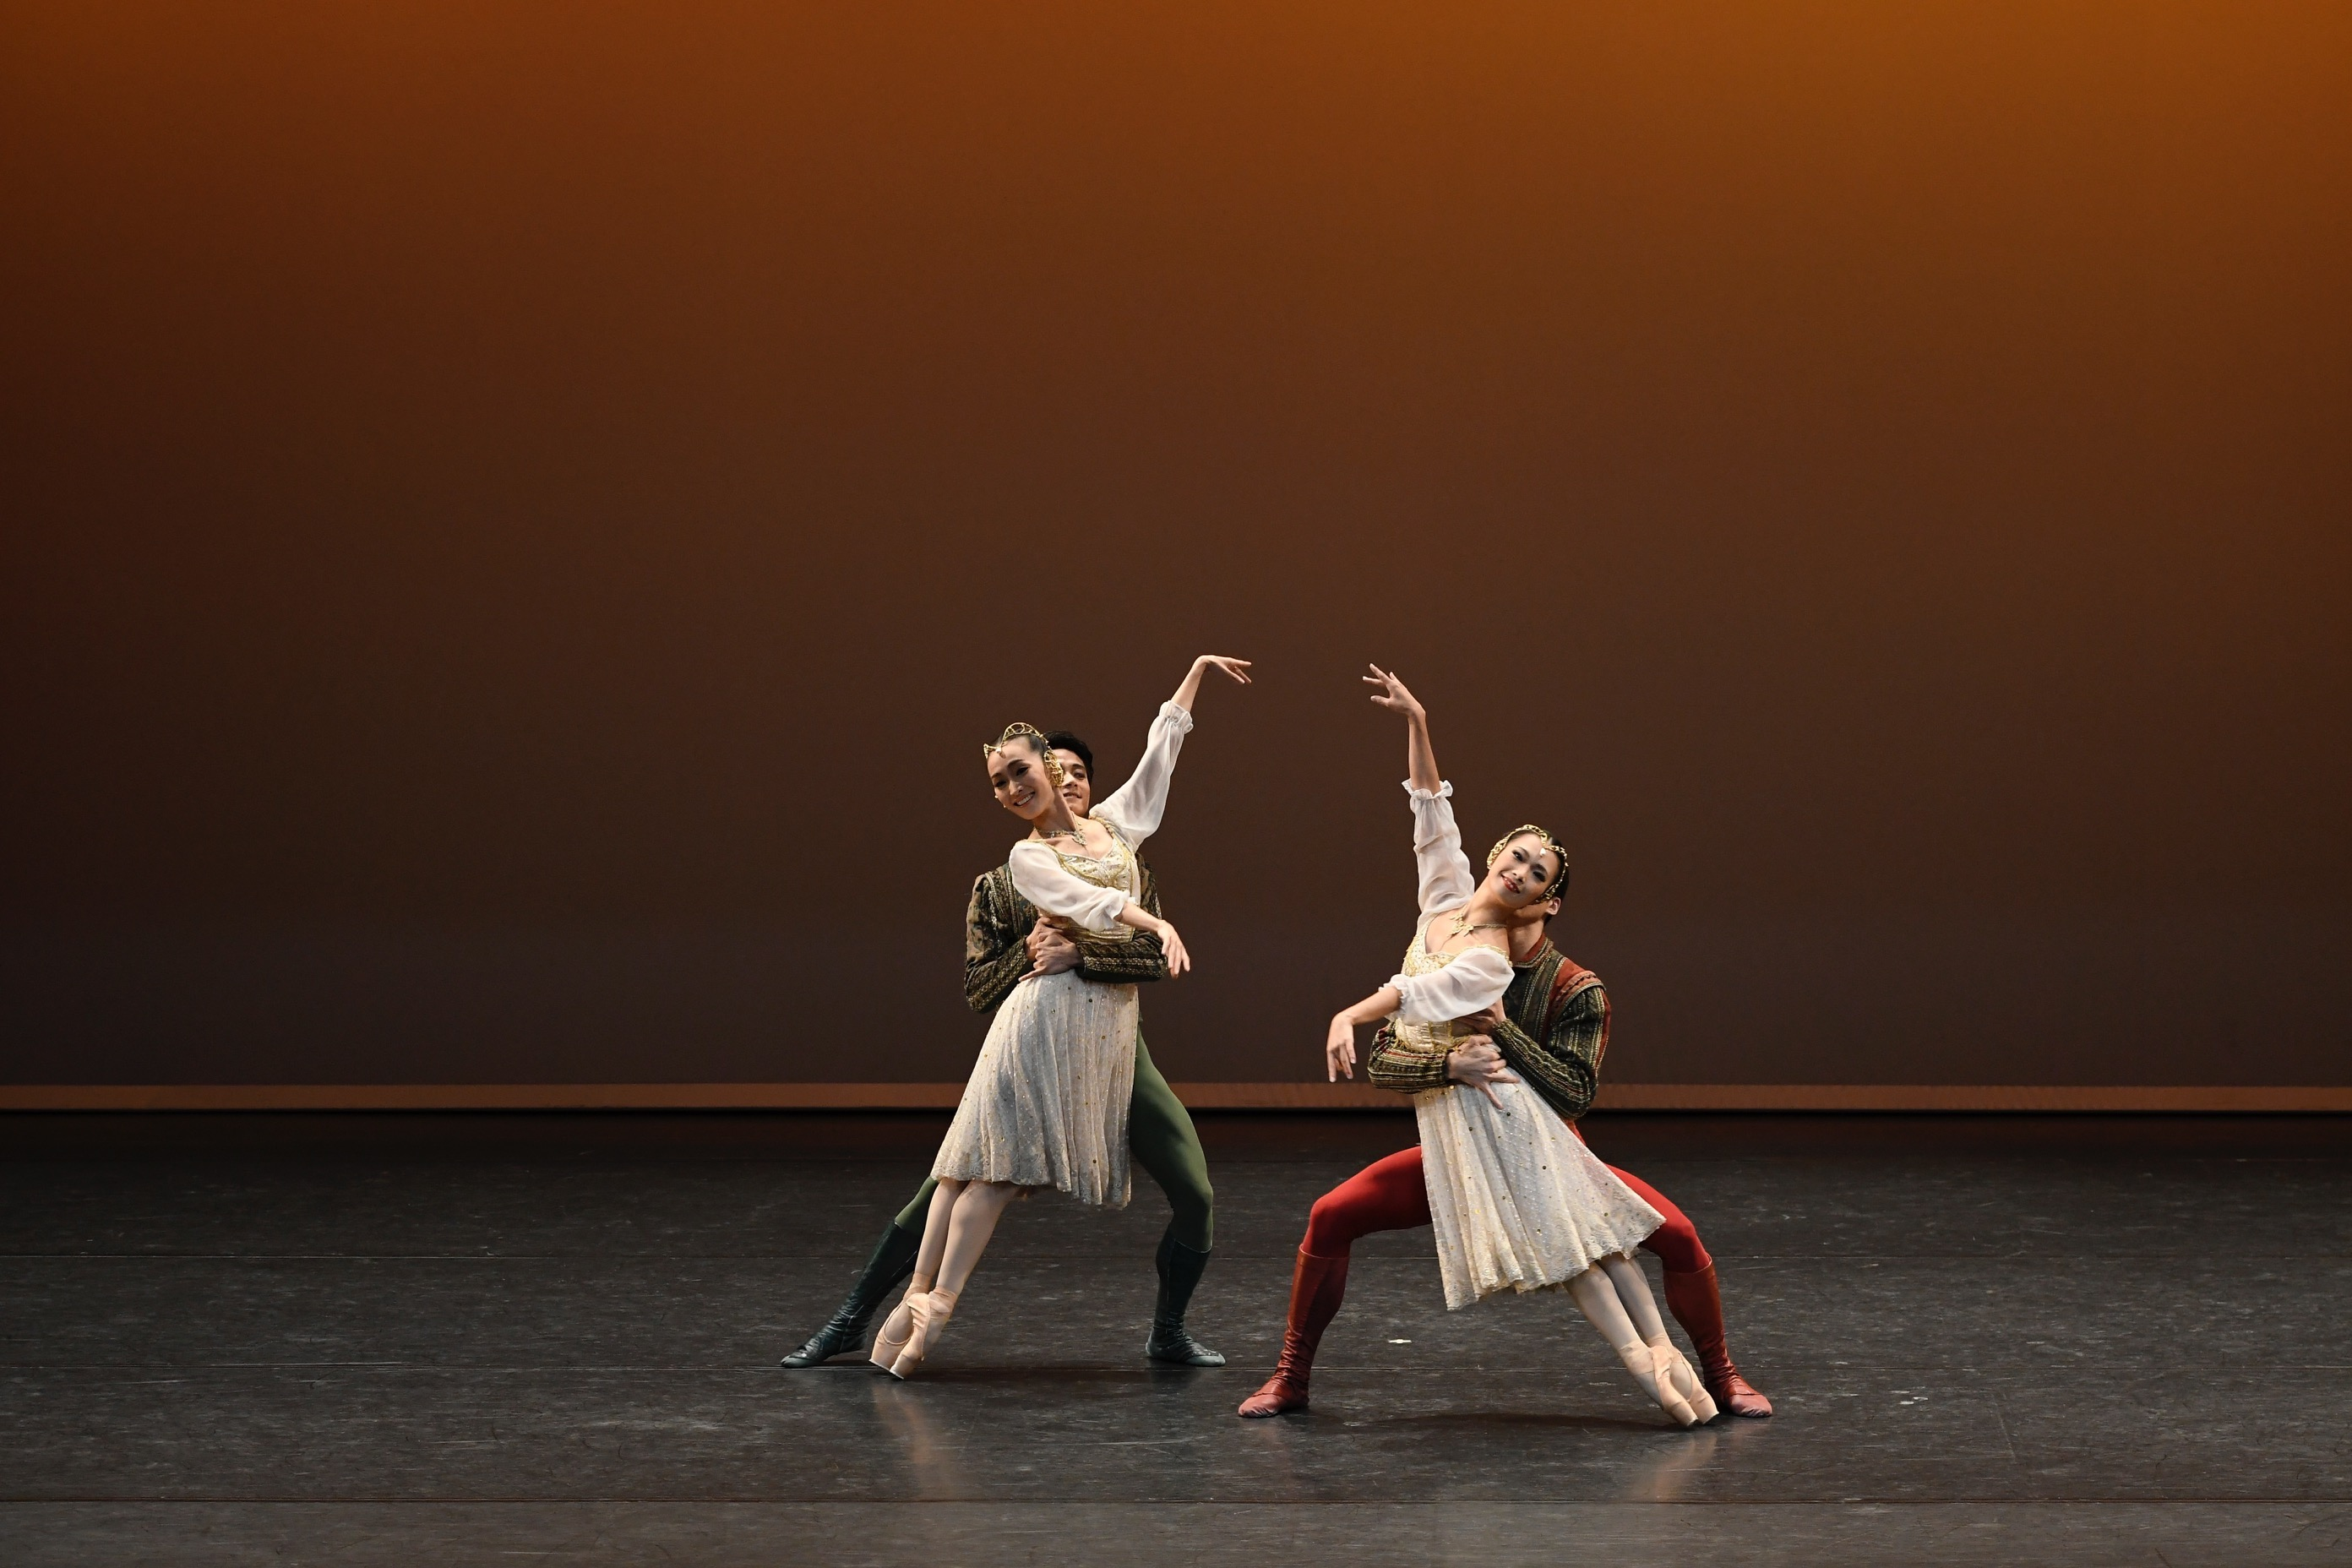 The Hong Kong Ballet